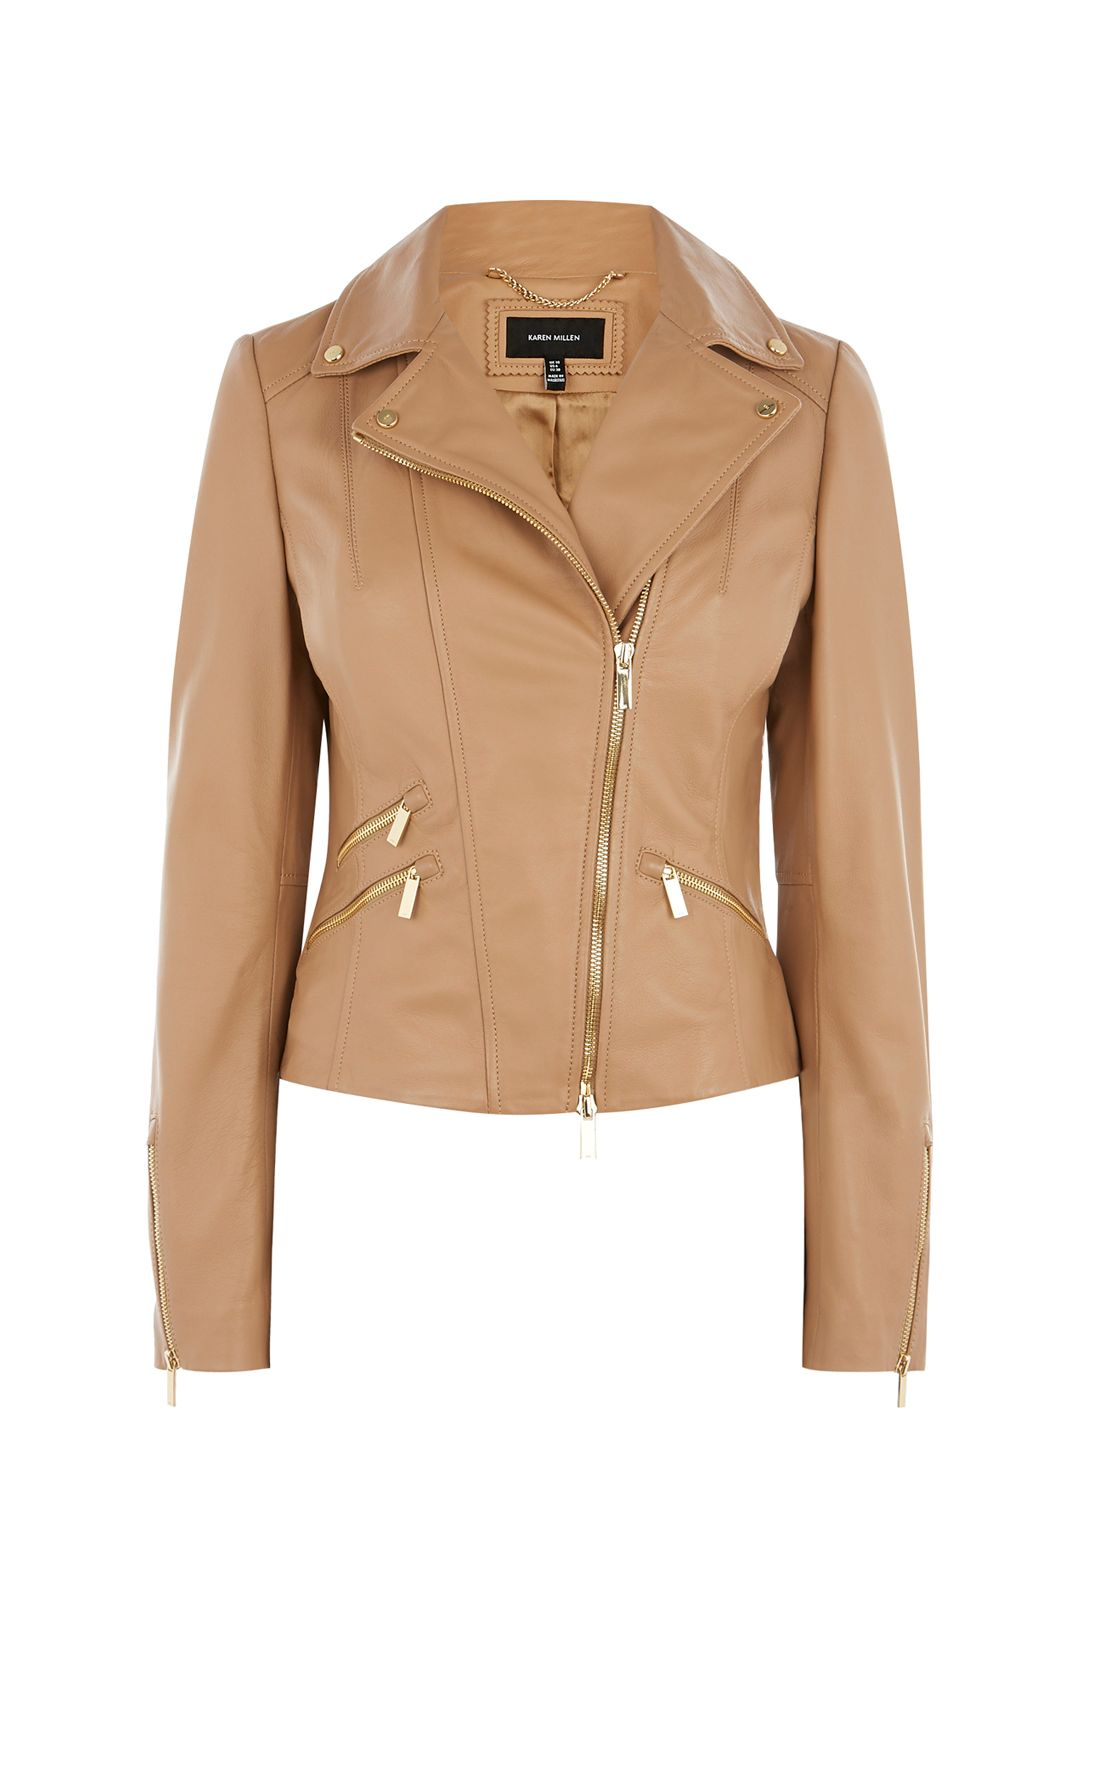 Karen Millen Tan Leather Biker Jacket, Neutral